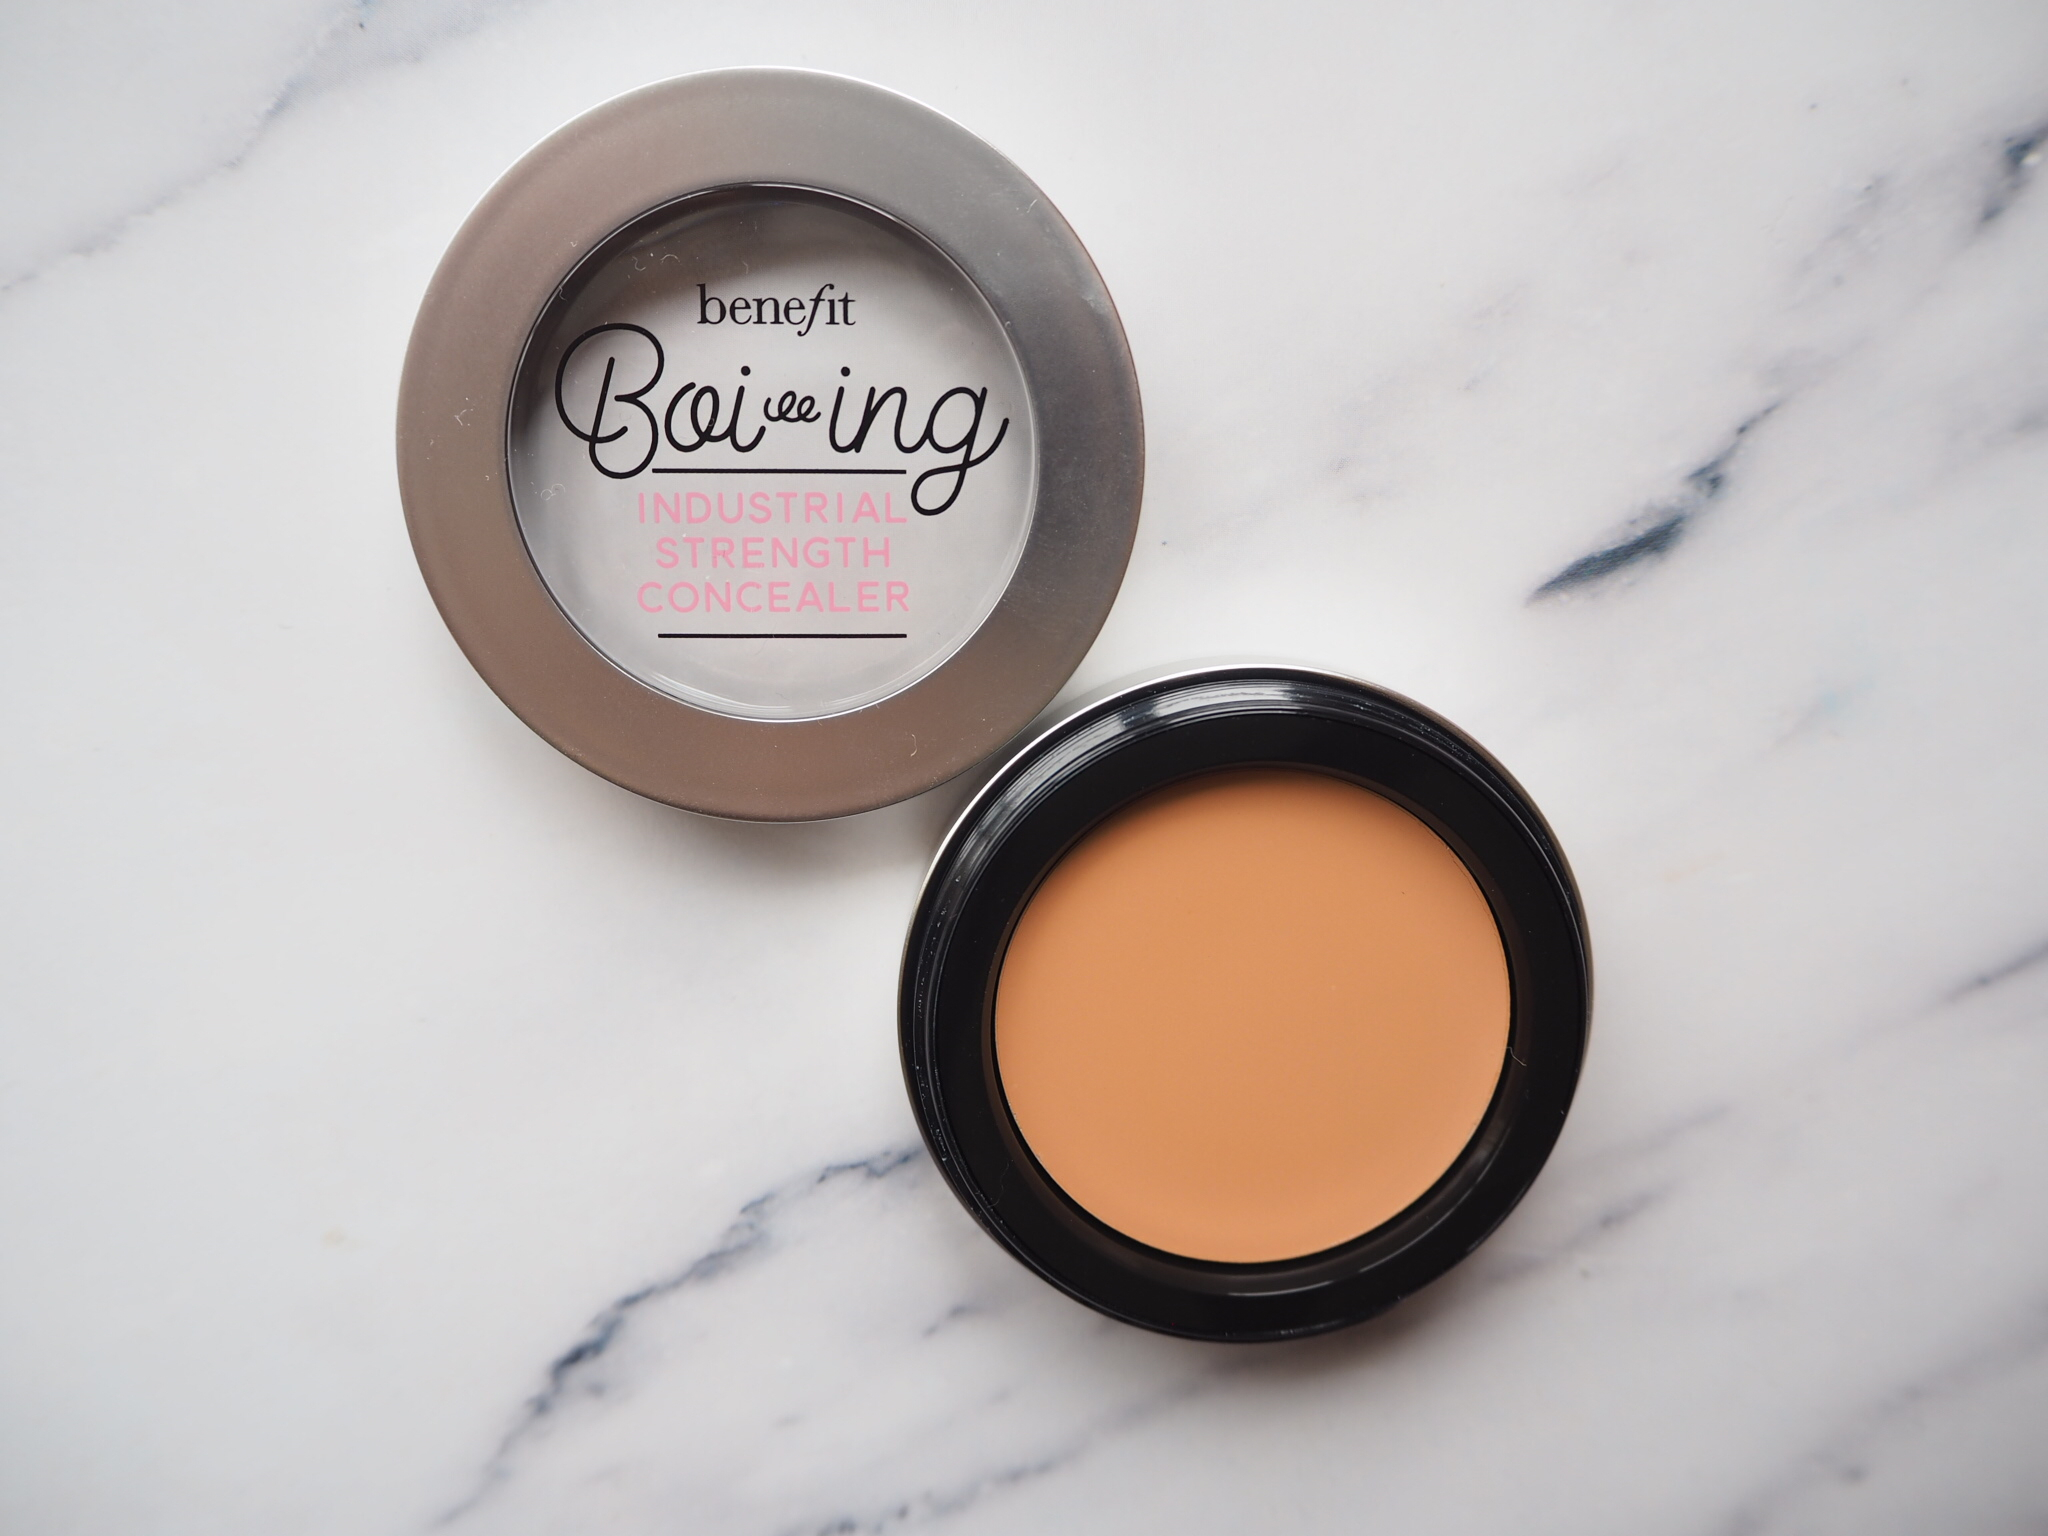 Benefit Beauty Review